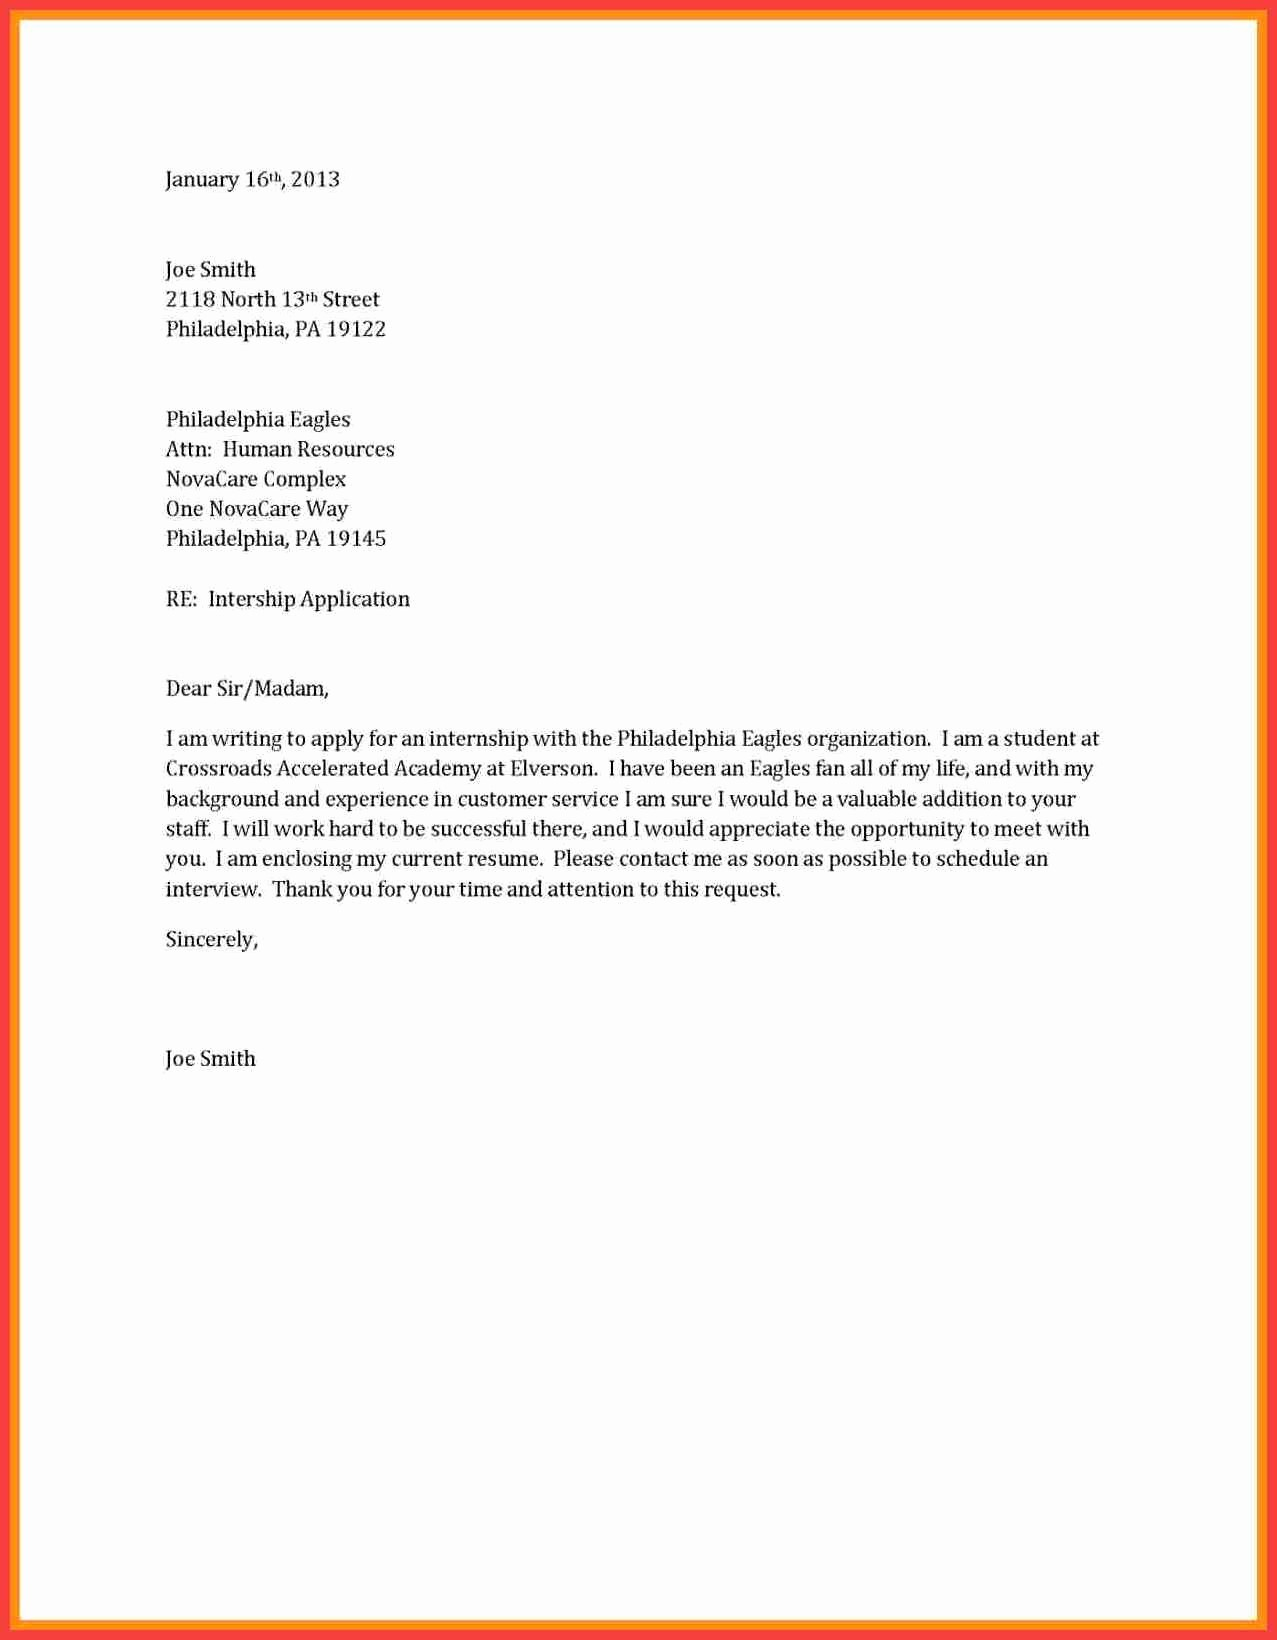 Basic Resume Cover Letter Template Inspirational Basic Cover Letter Outline